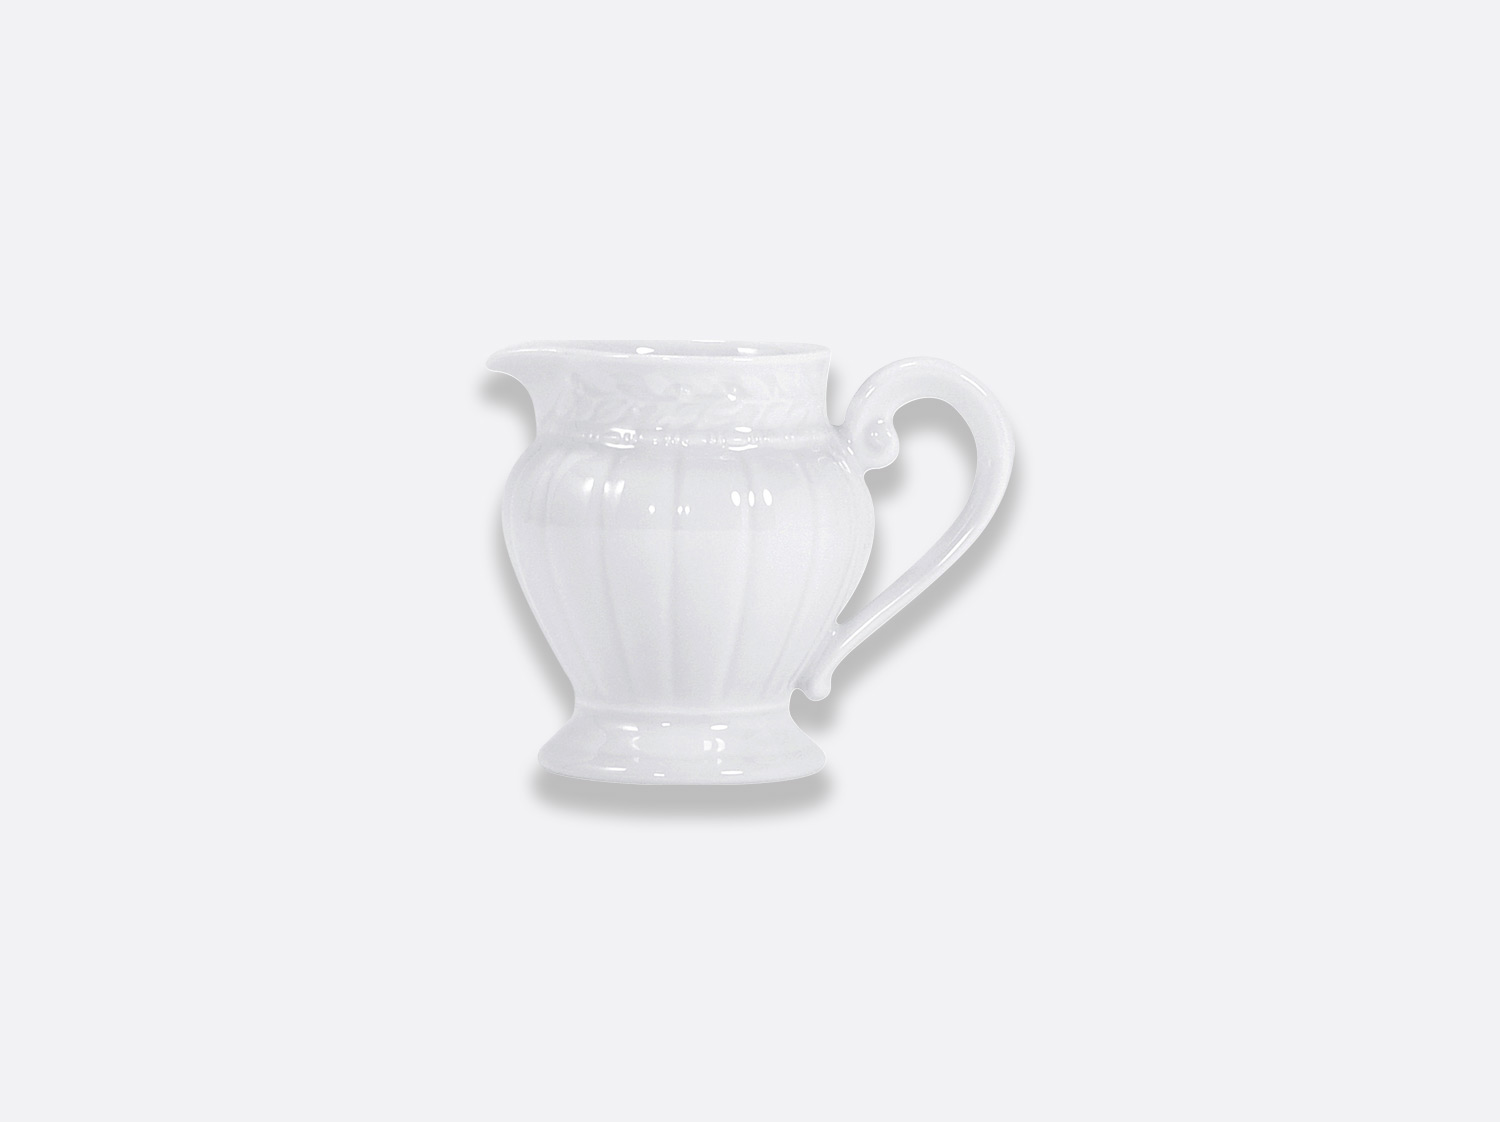 Crémier 15 cl en porcelaine de la collection Louvre Bernardaud